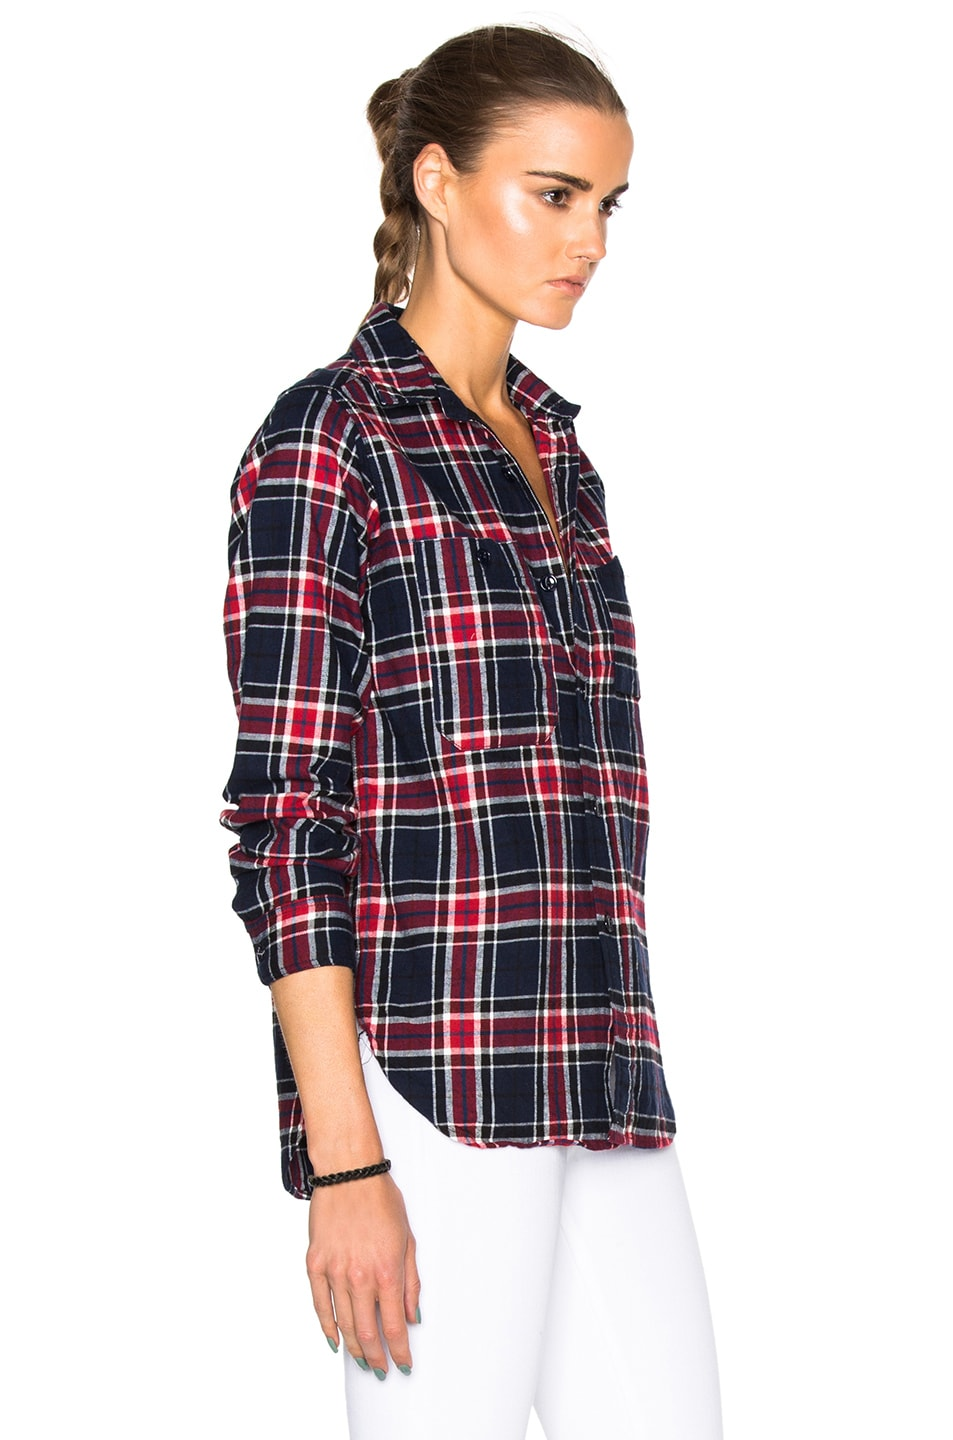 Image 3 of Engineered Garments Big Plaid Flannel Work Shirt in Navy & Red